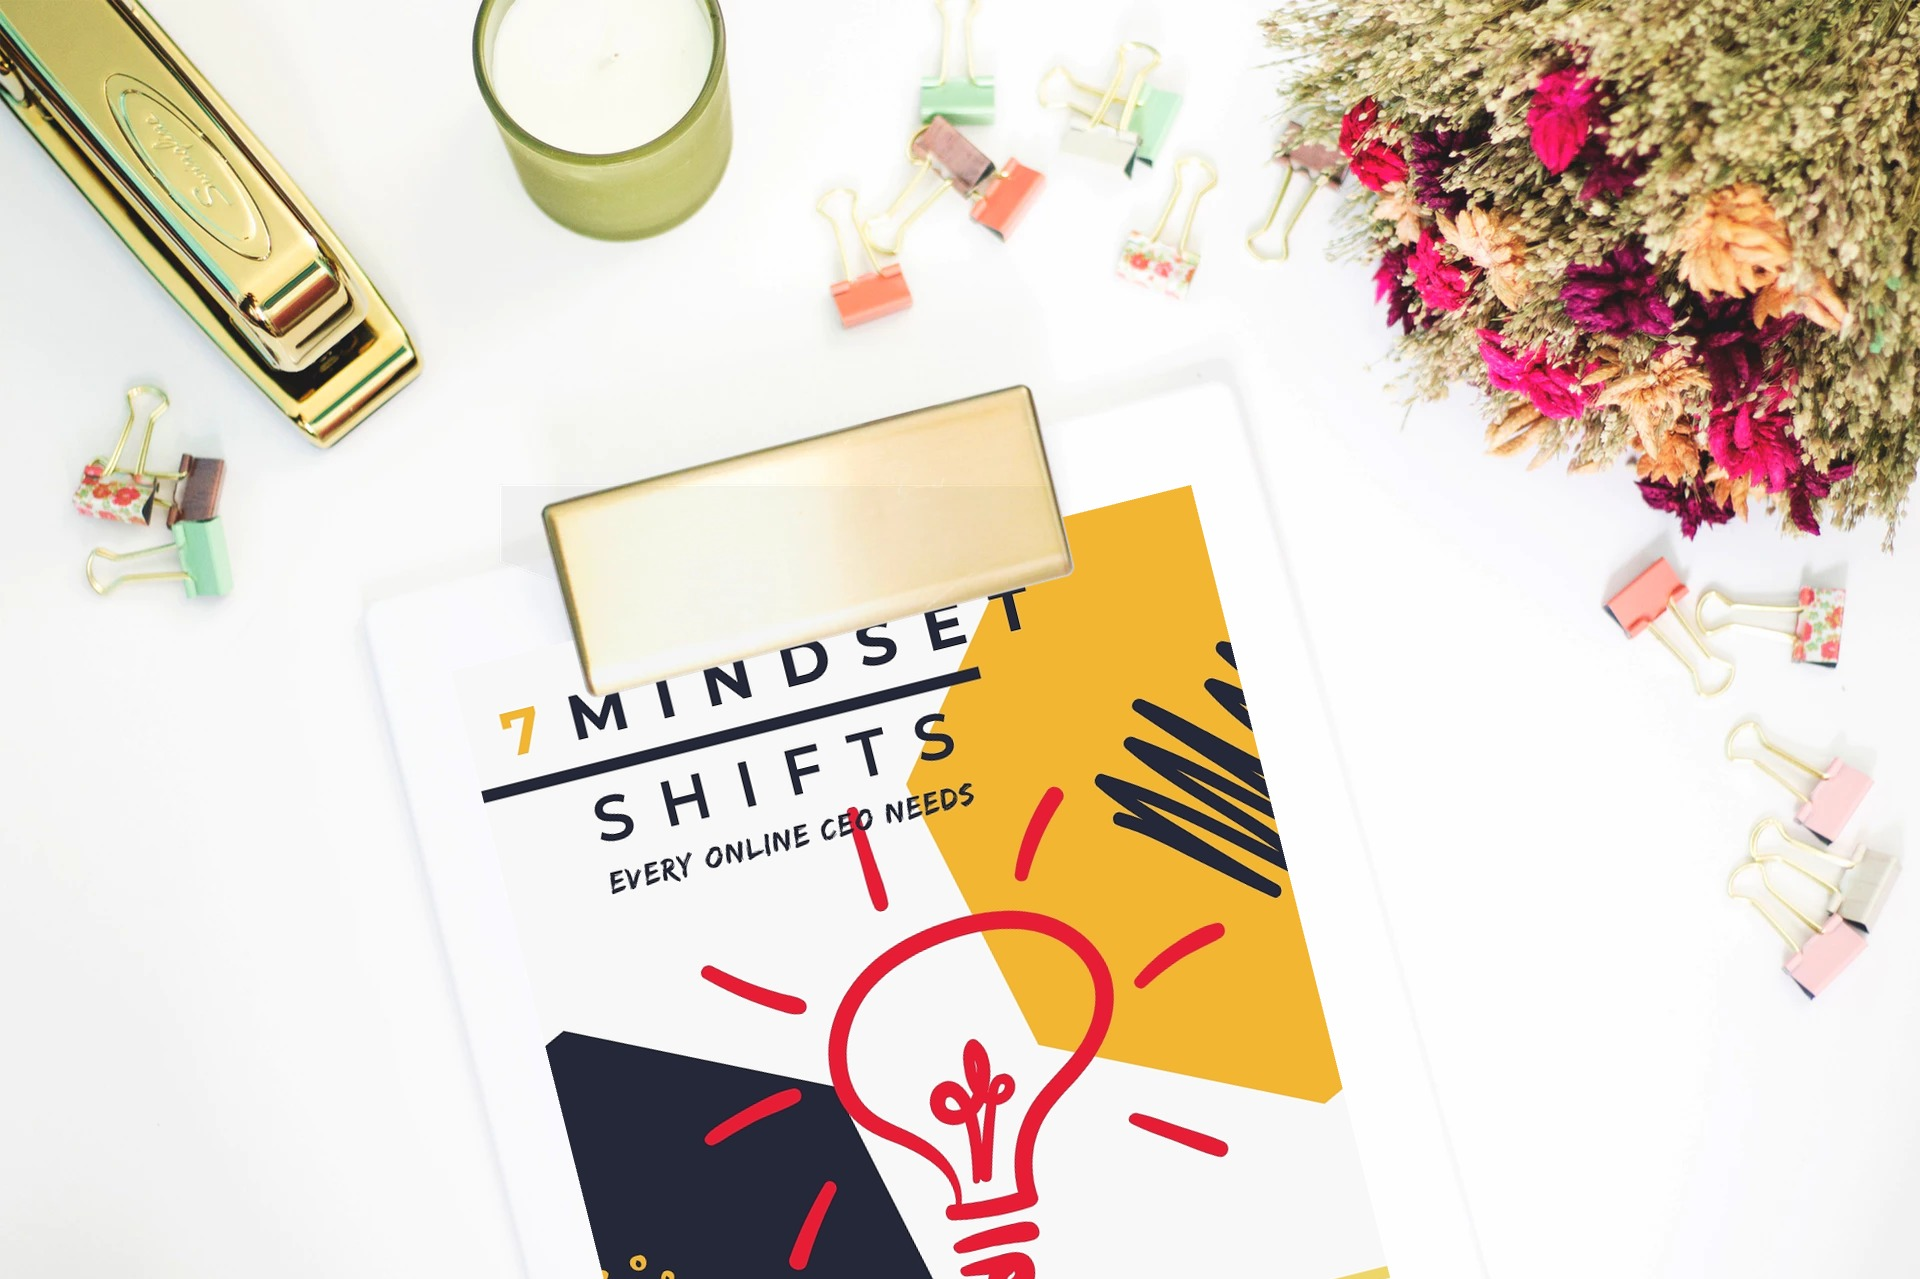 cdatubo_7 mindset shifts for online ceos download